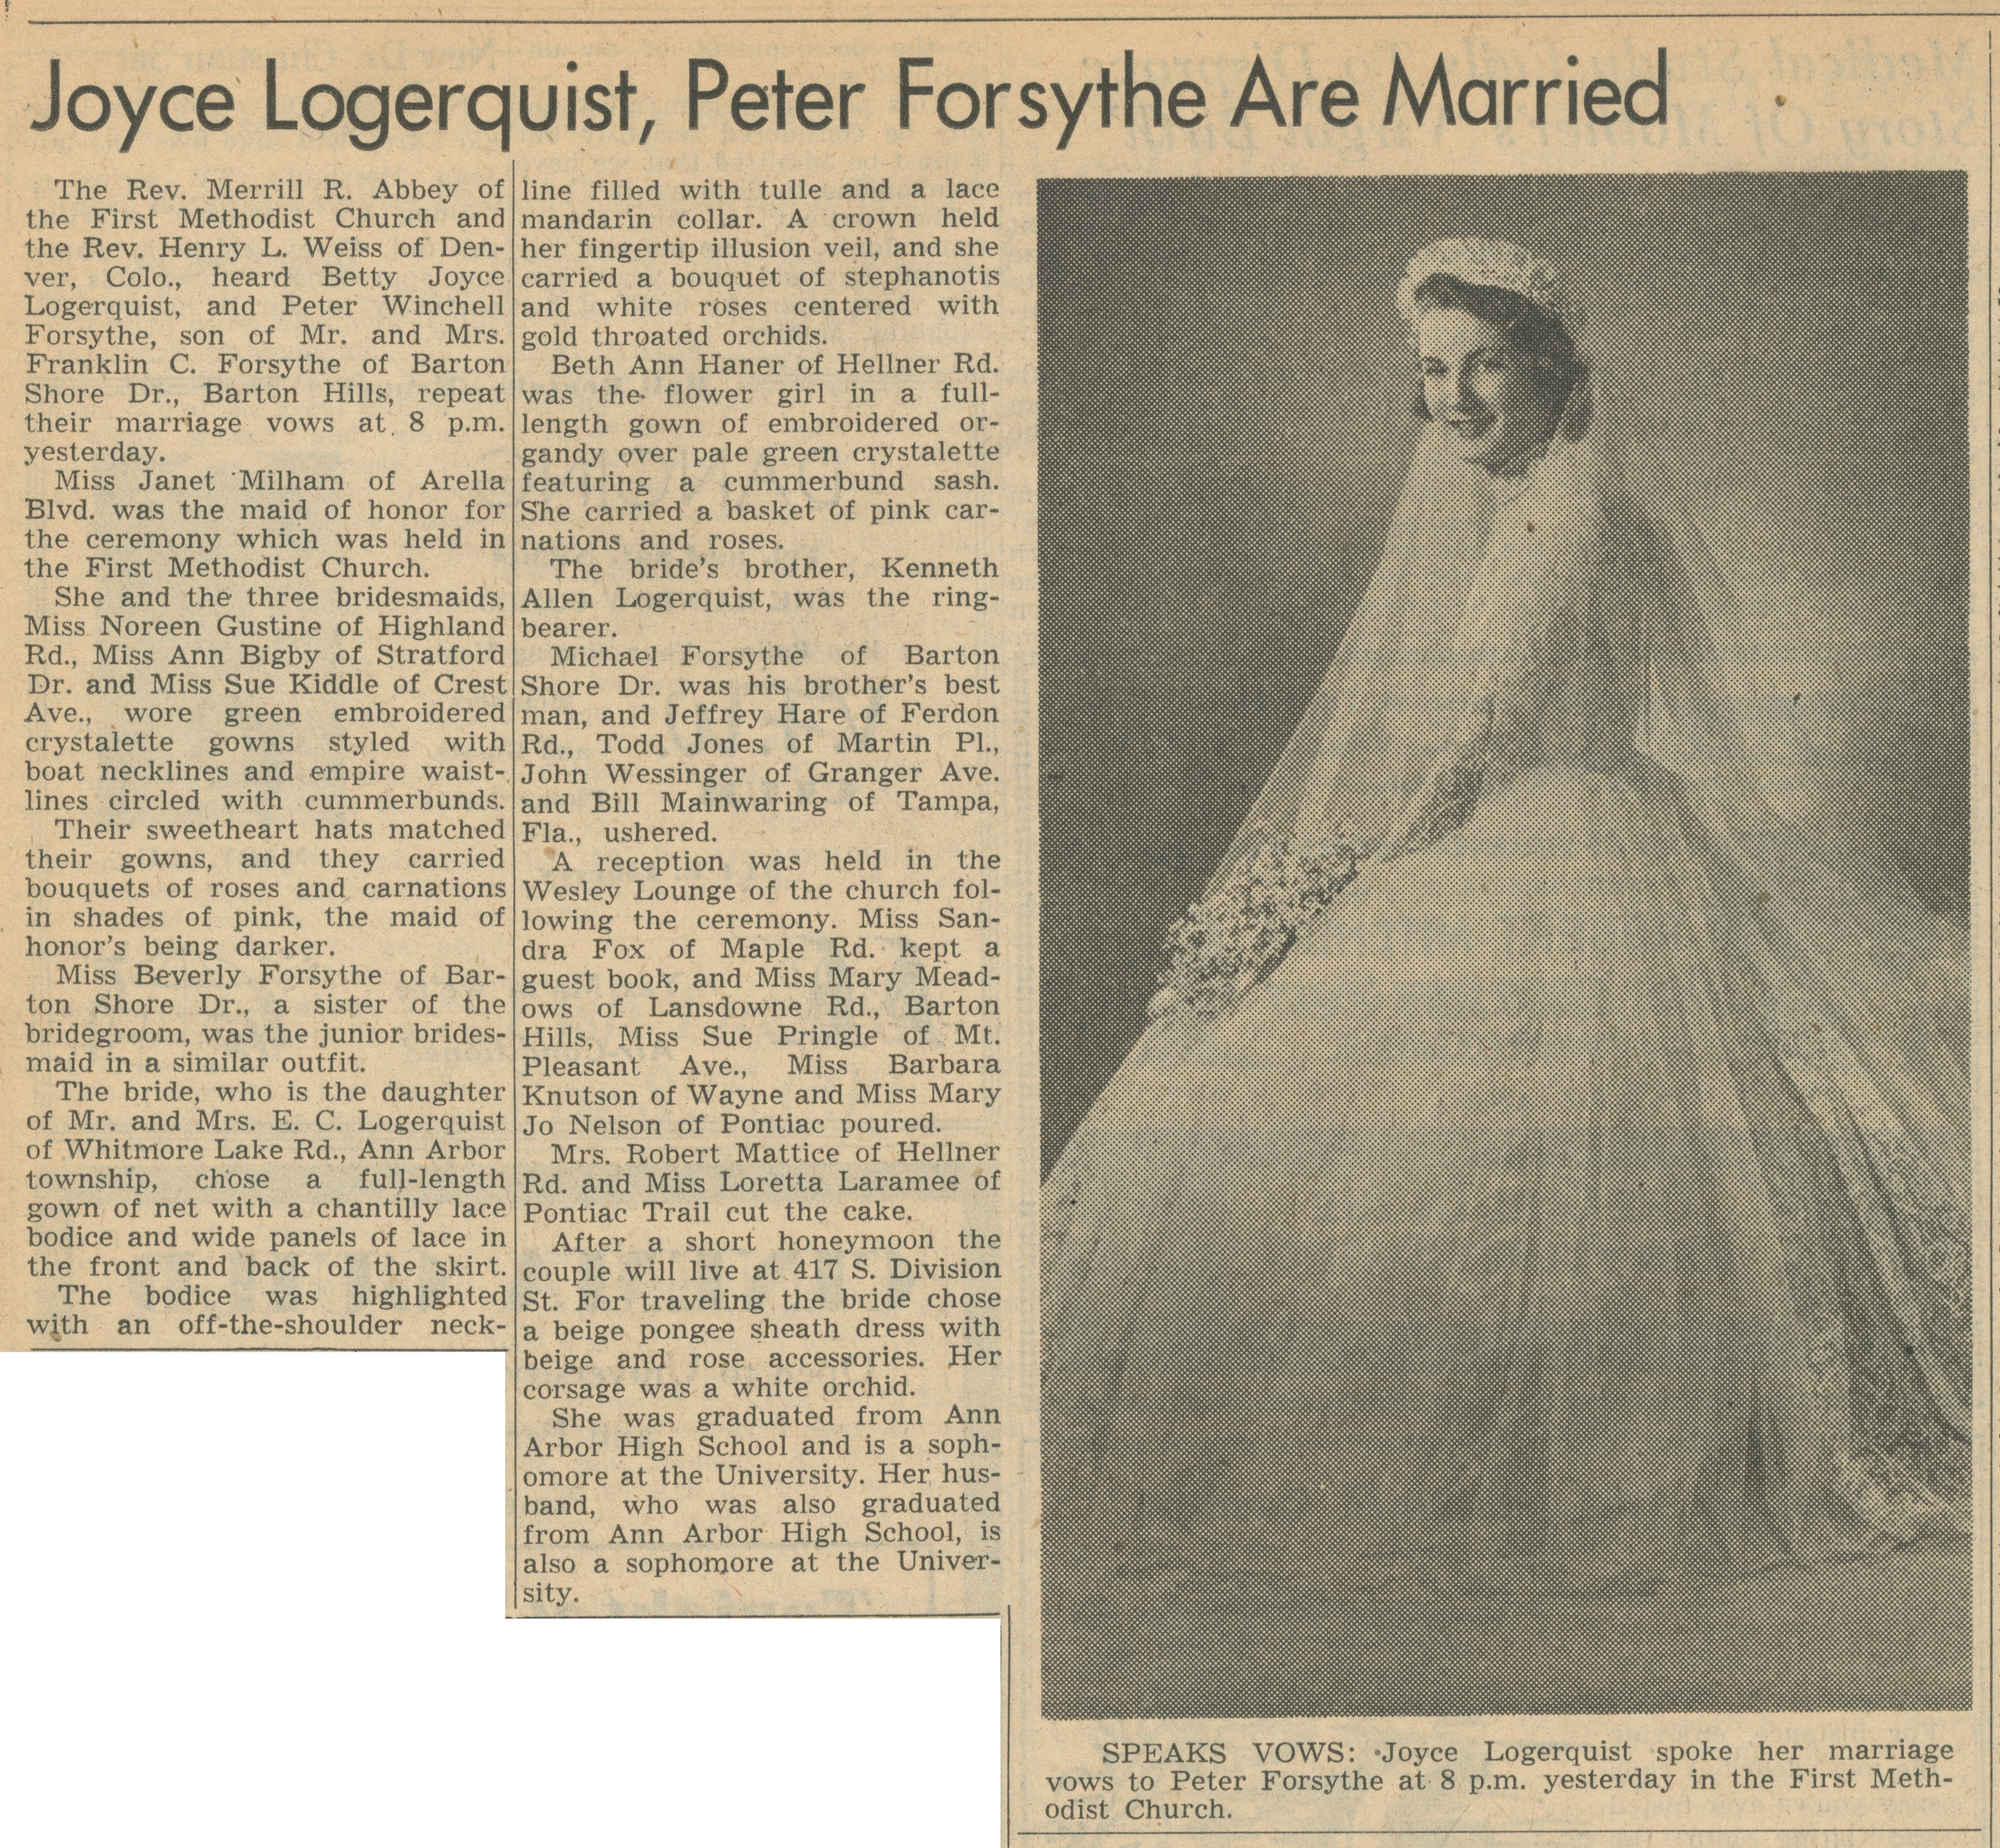 Joyce Logerquist, Peter Forsythe Are Married image